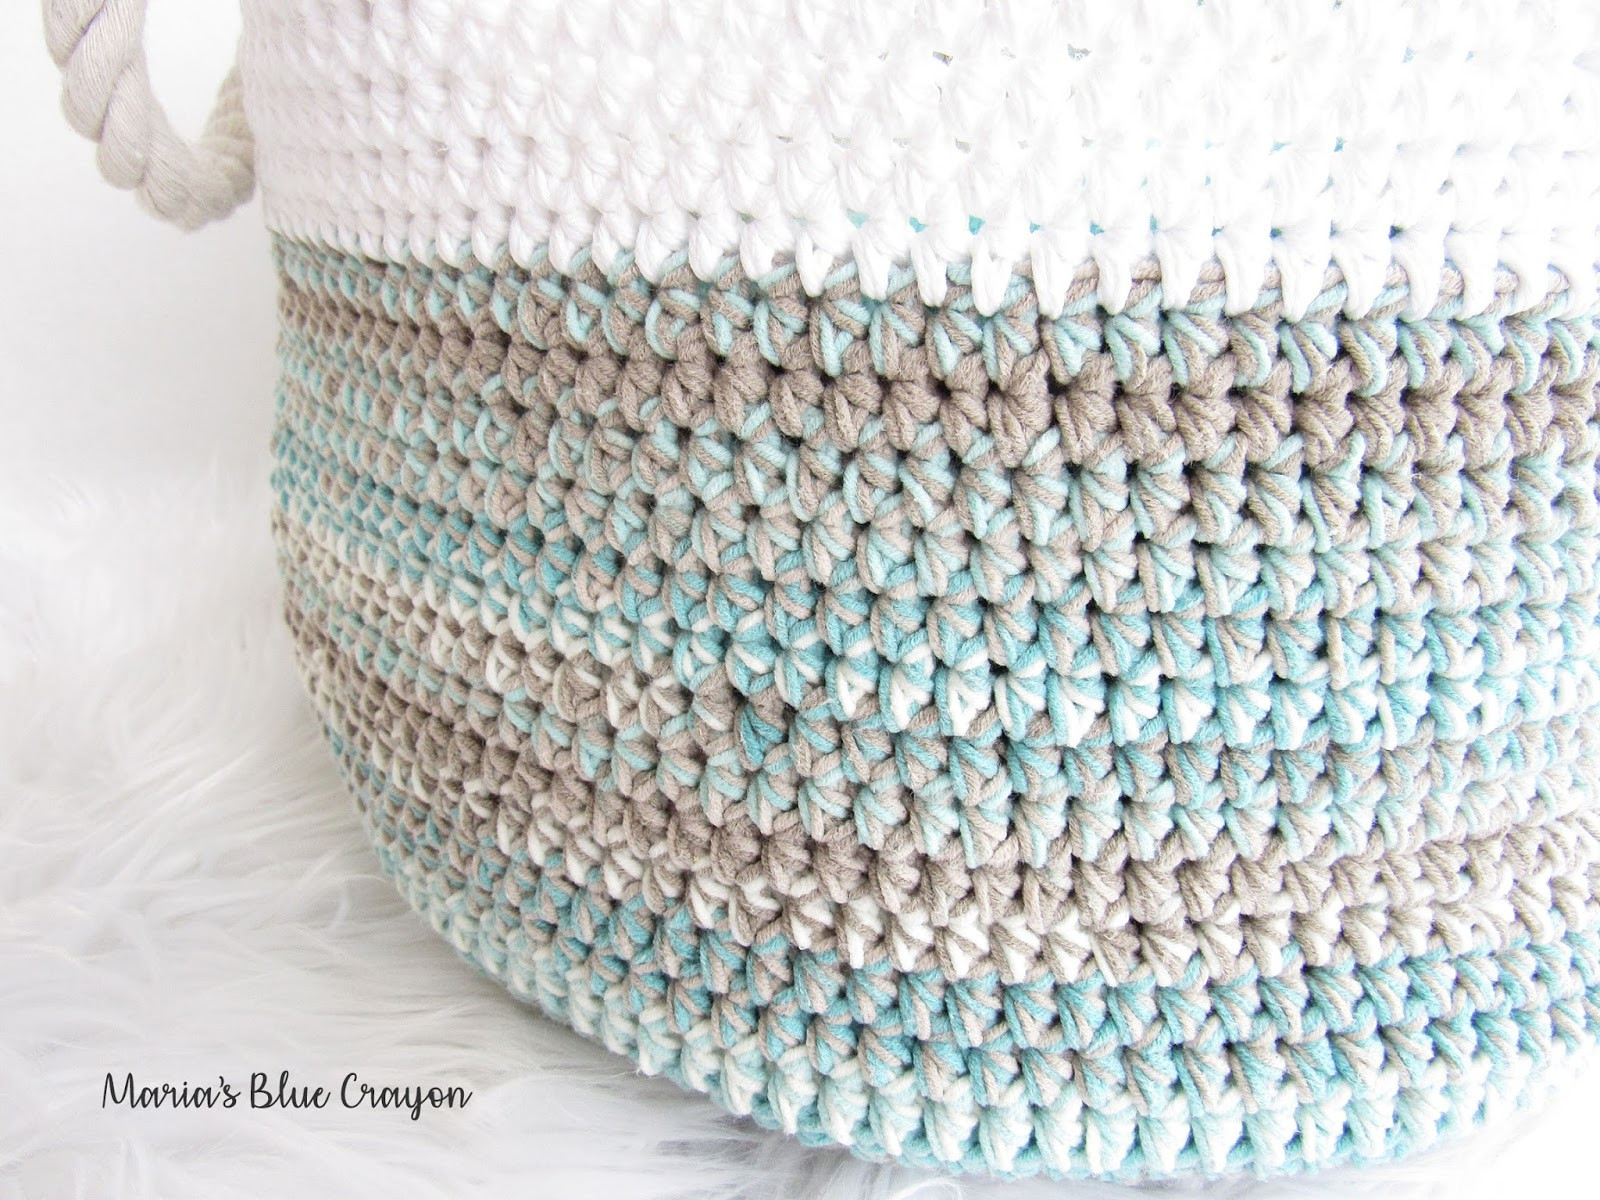 Elegant Caron Cotton Cakes Basket Free Crochet Pattern Maria S Caron Cotton Cakes Patterns Of Beautiful 45 Images Caron Cotton Cakes Patterns